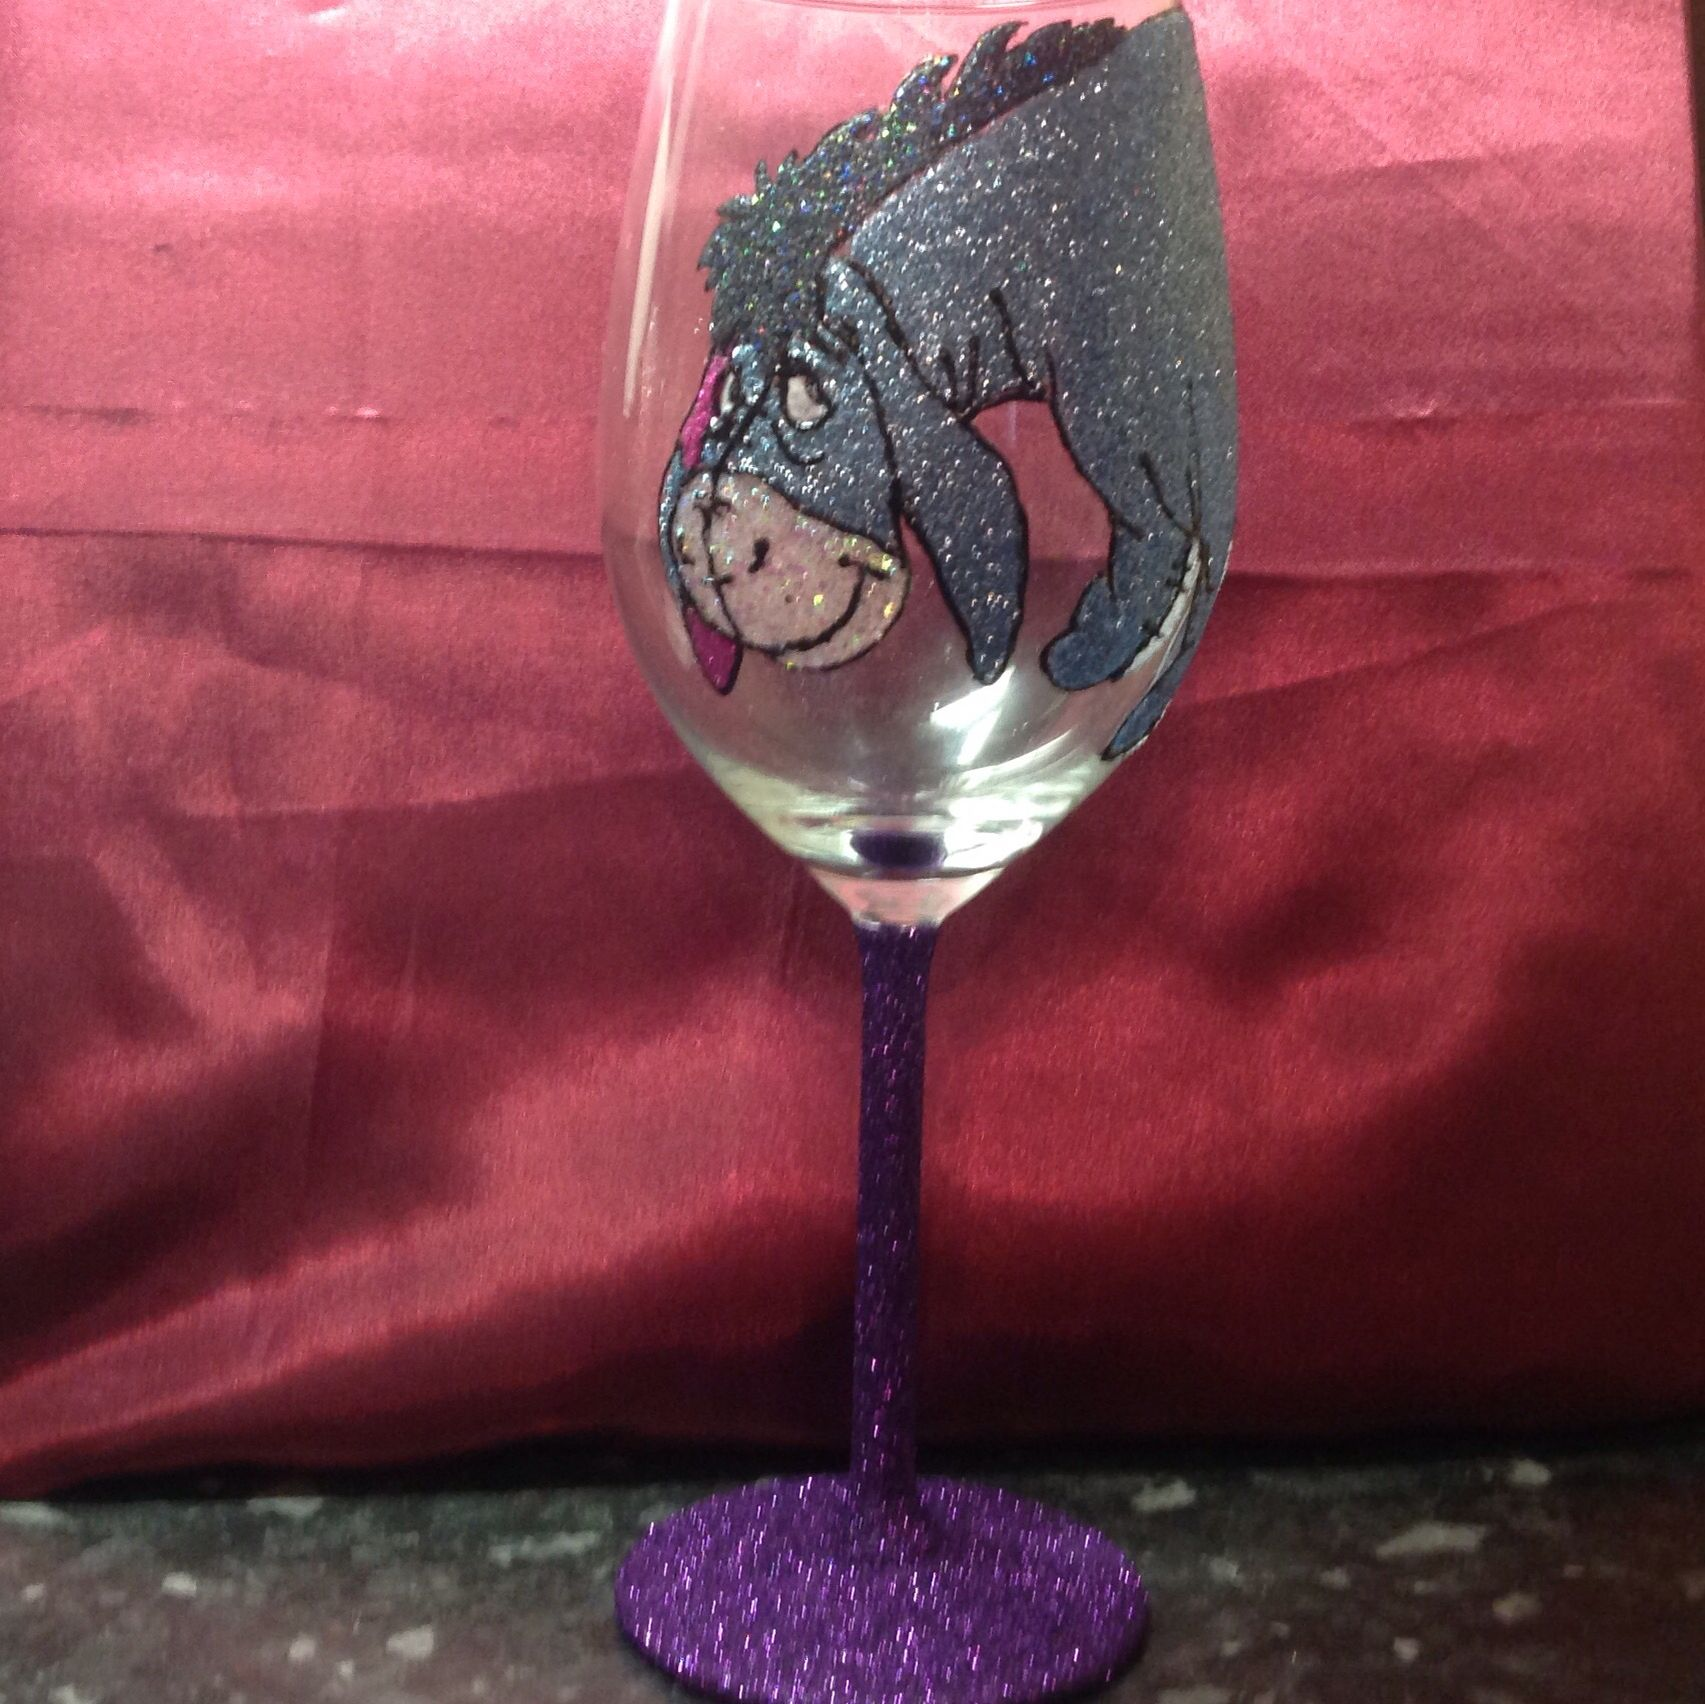 Eeyore Wine Glass Available In My Etsy Shop Eeyore Glitter Wineglass Eeyore Eeyore Quotes Etsy Shop